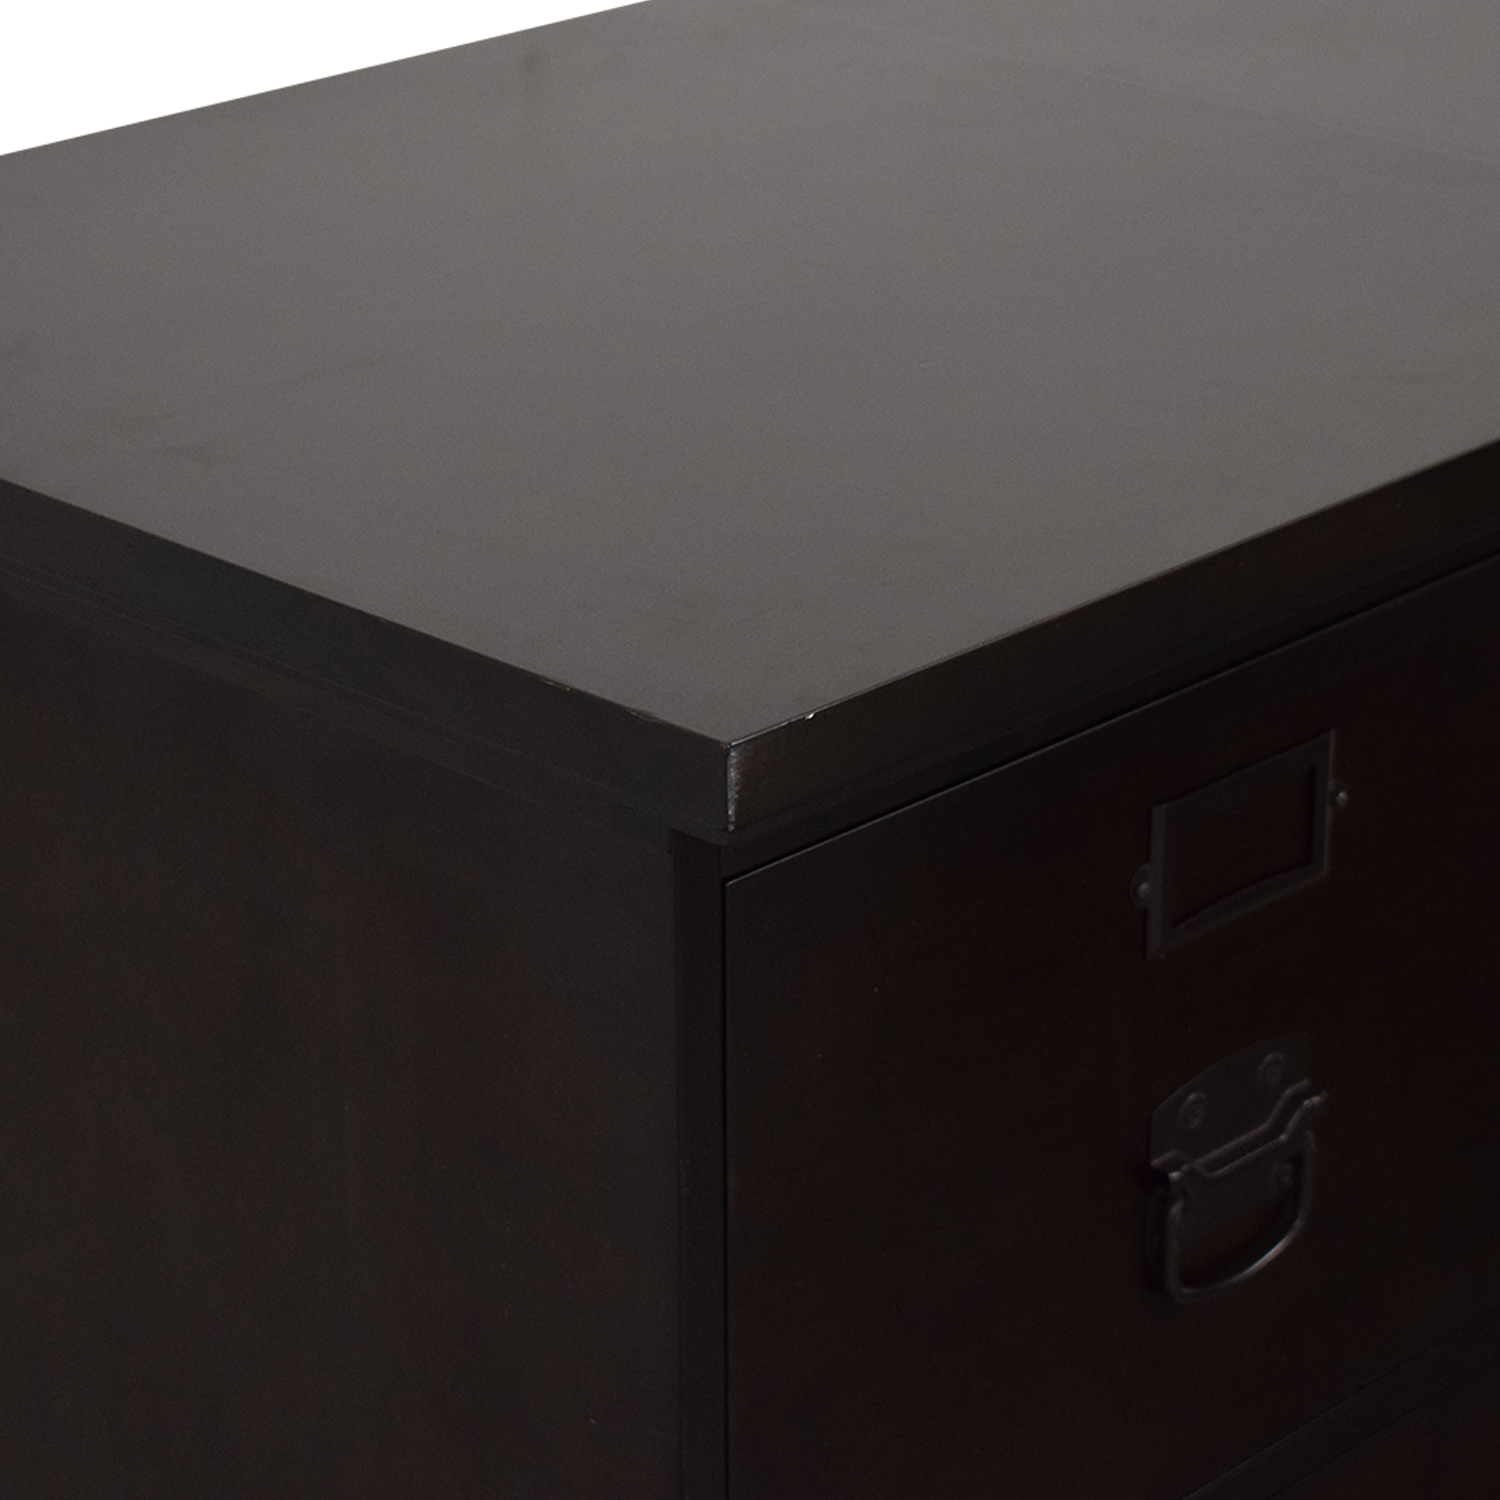 West Elm West Elm Corner Desk dimensions